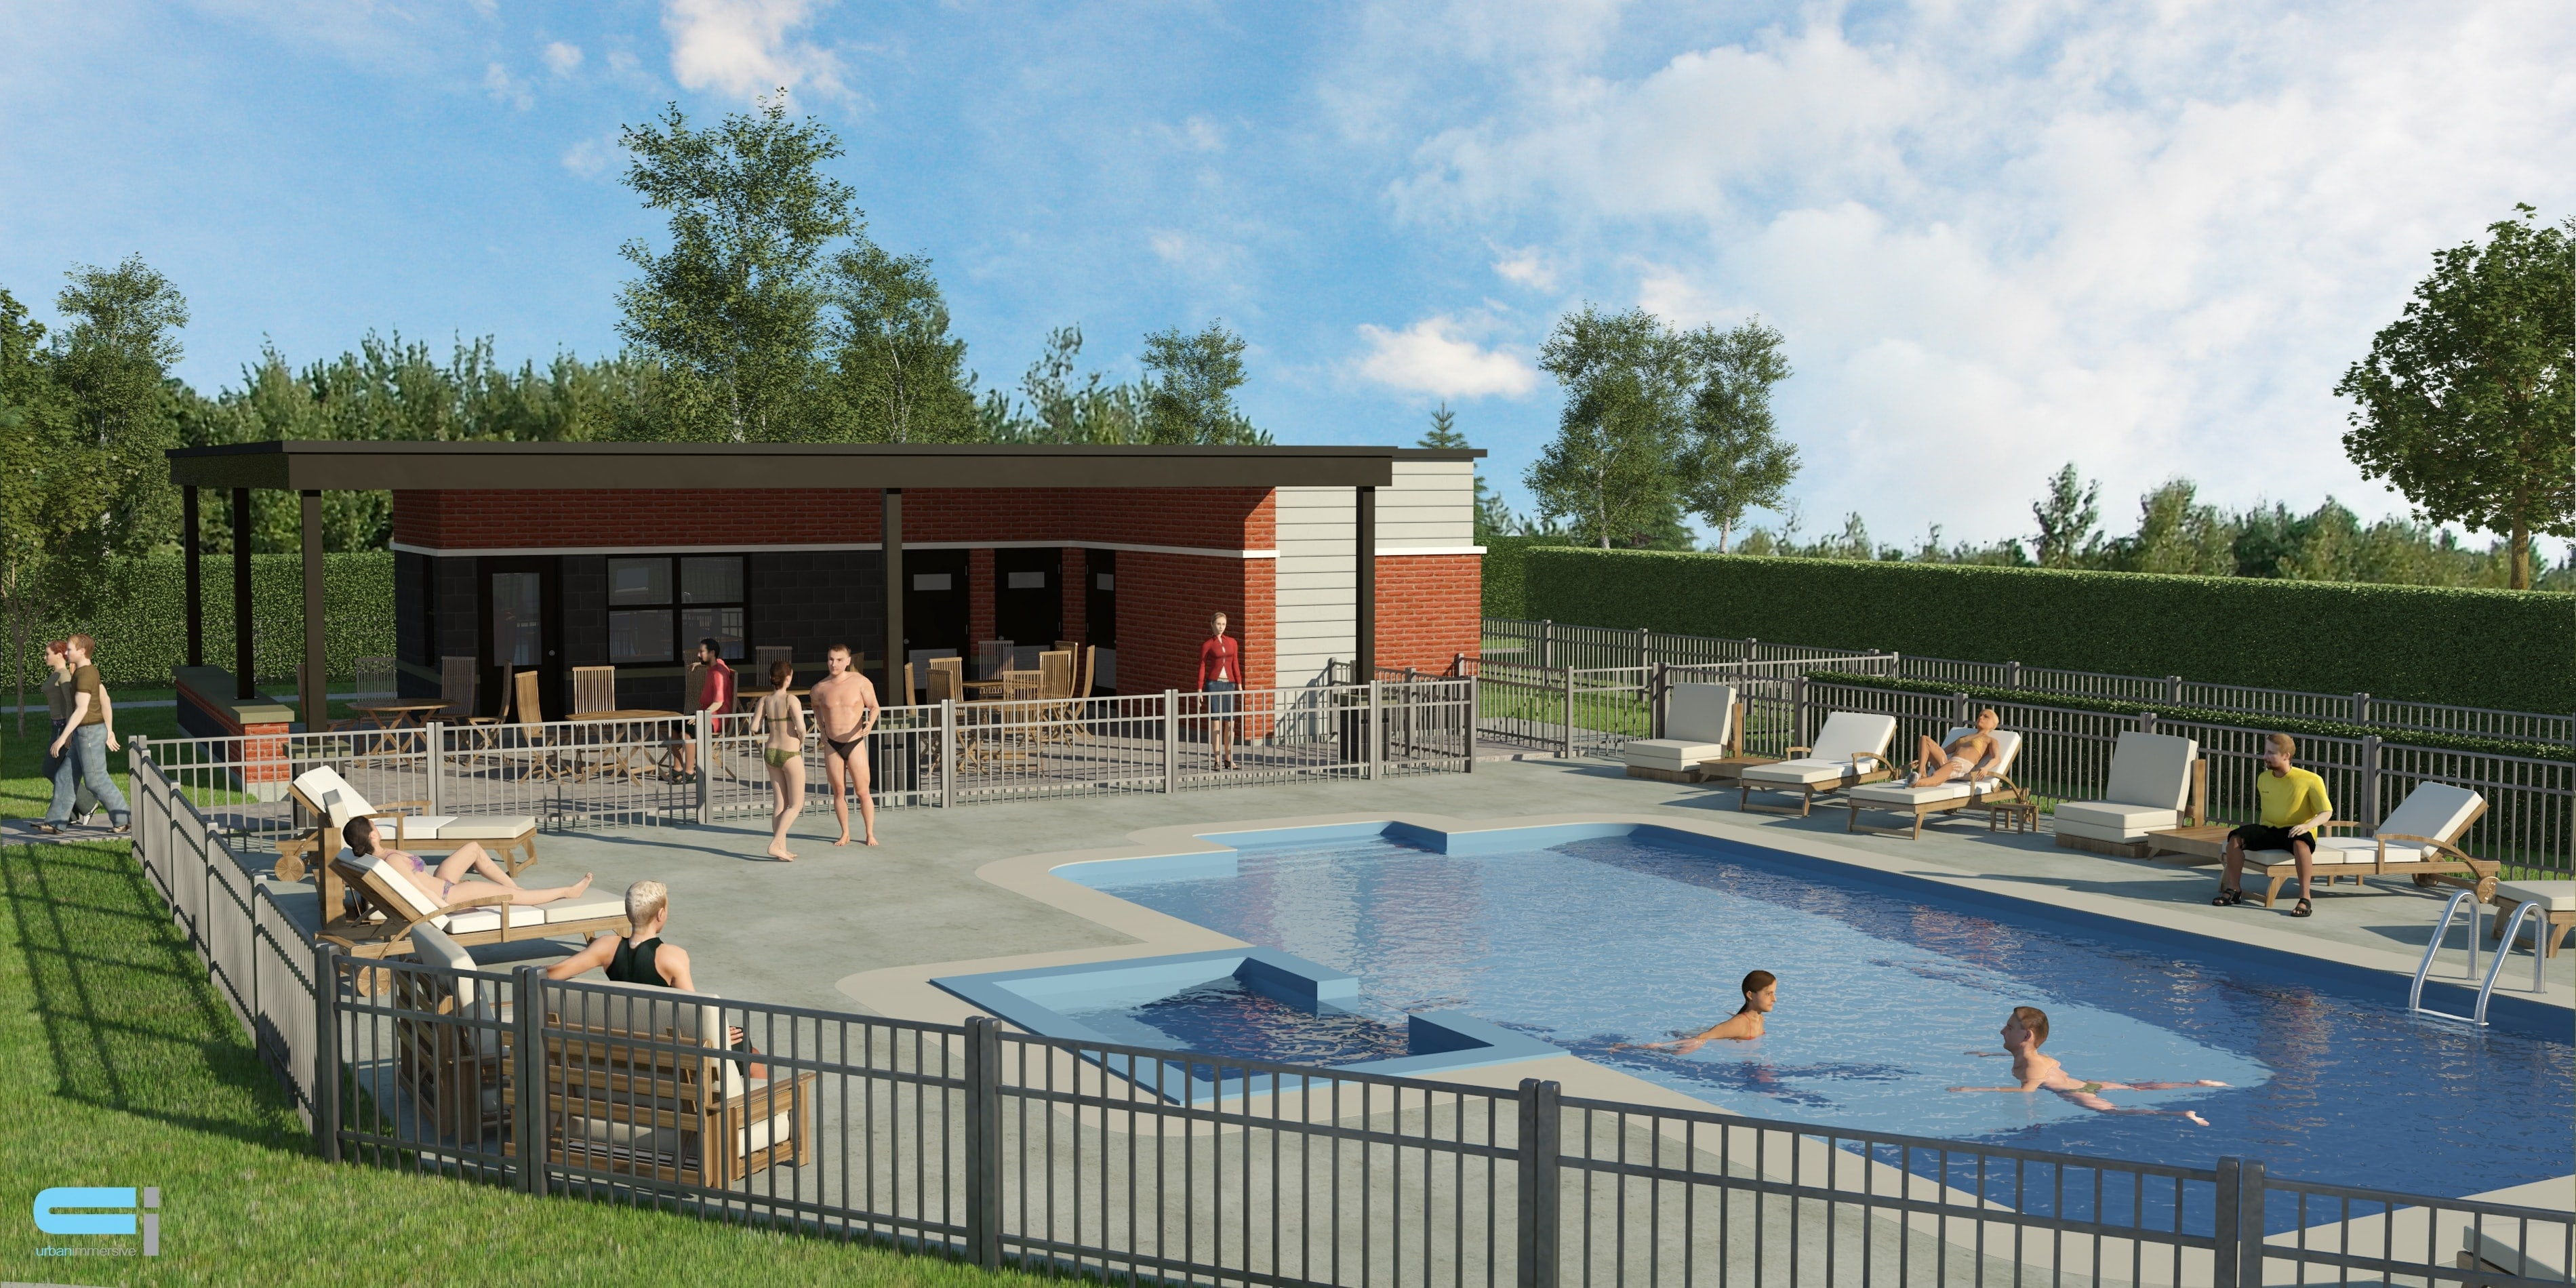 Projet square jean beraud phase e m trocit laval for Club piscine laval 440